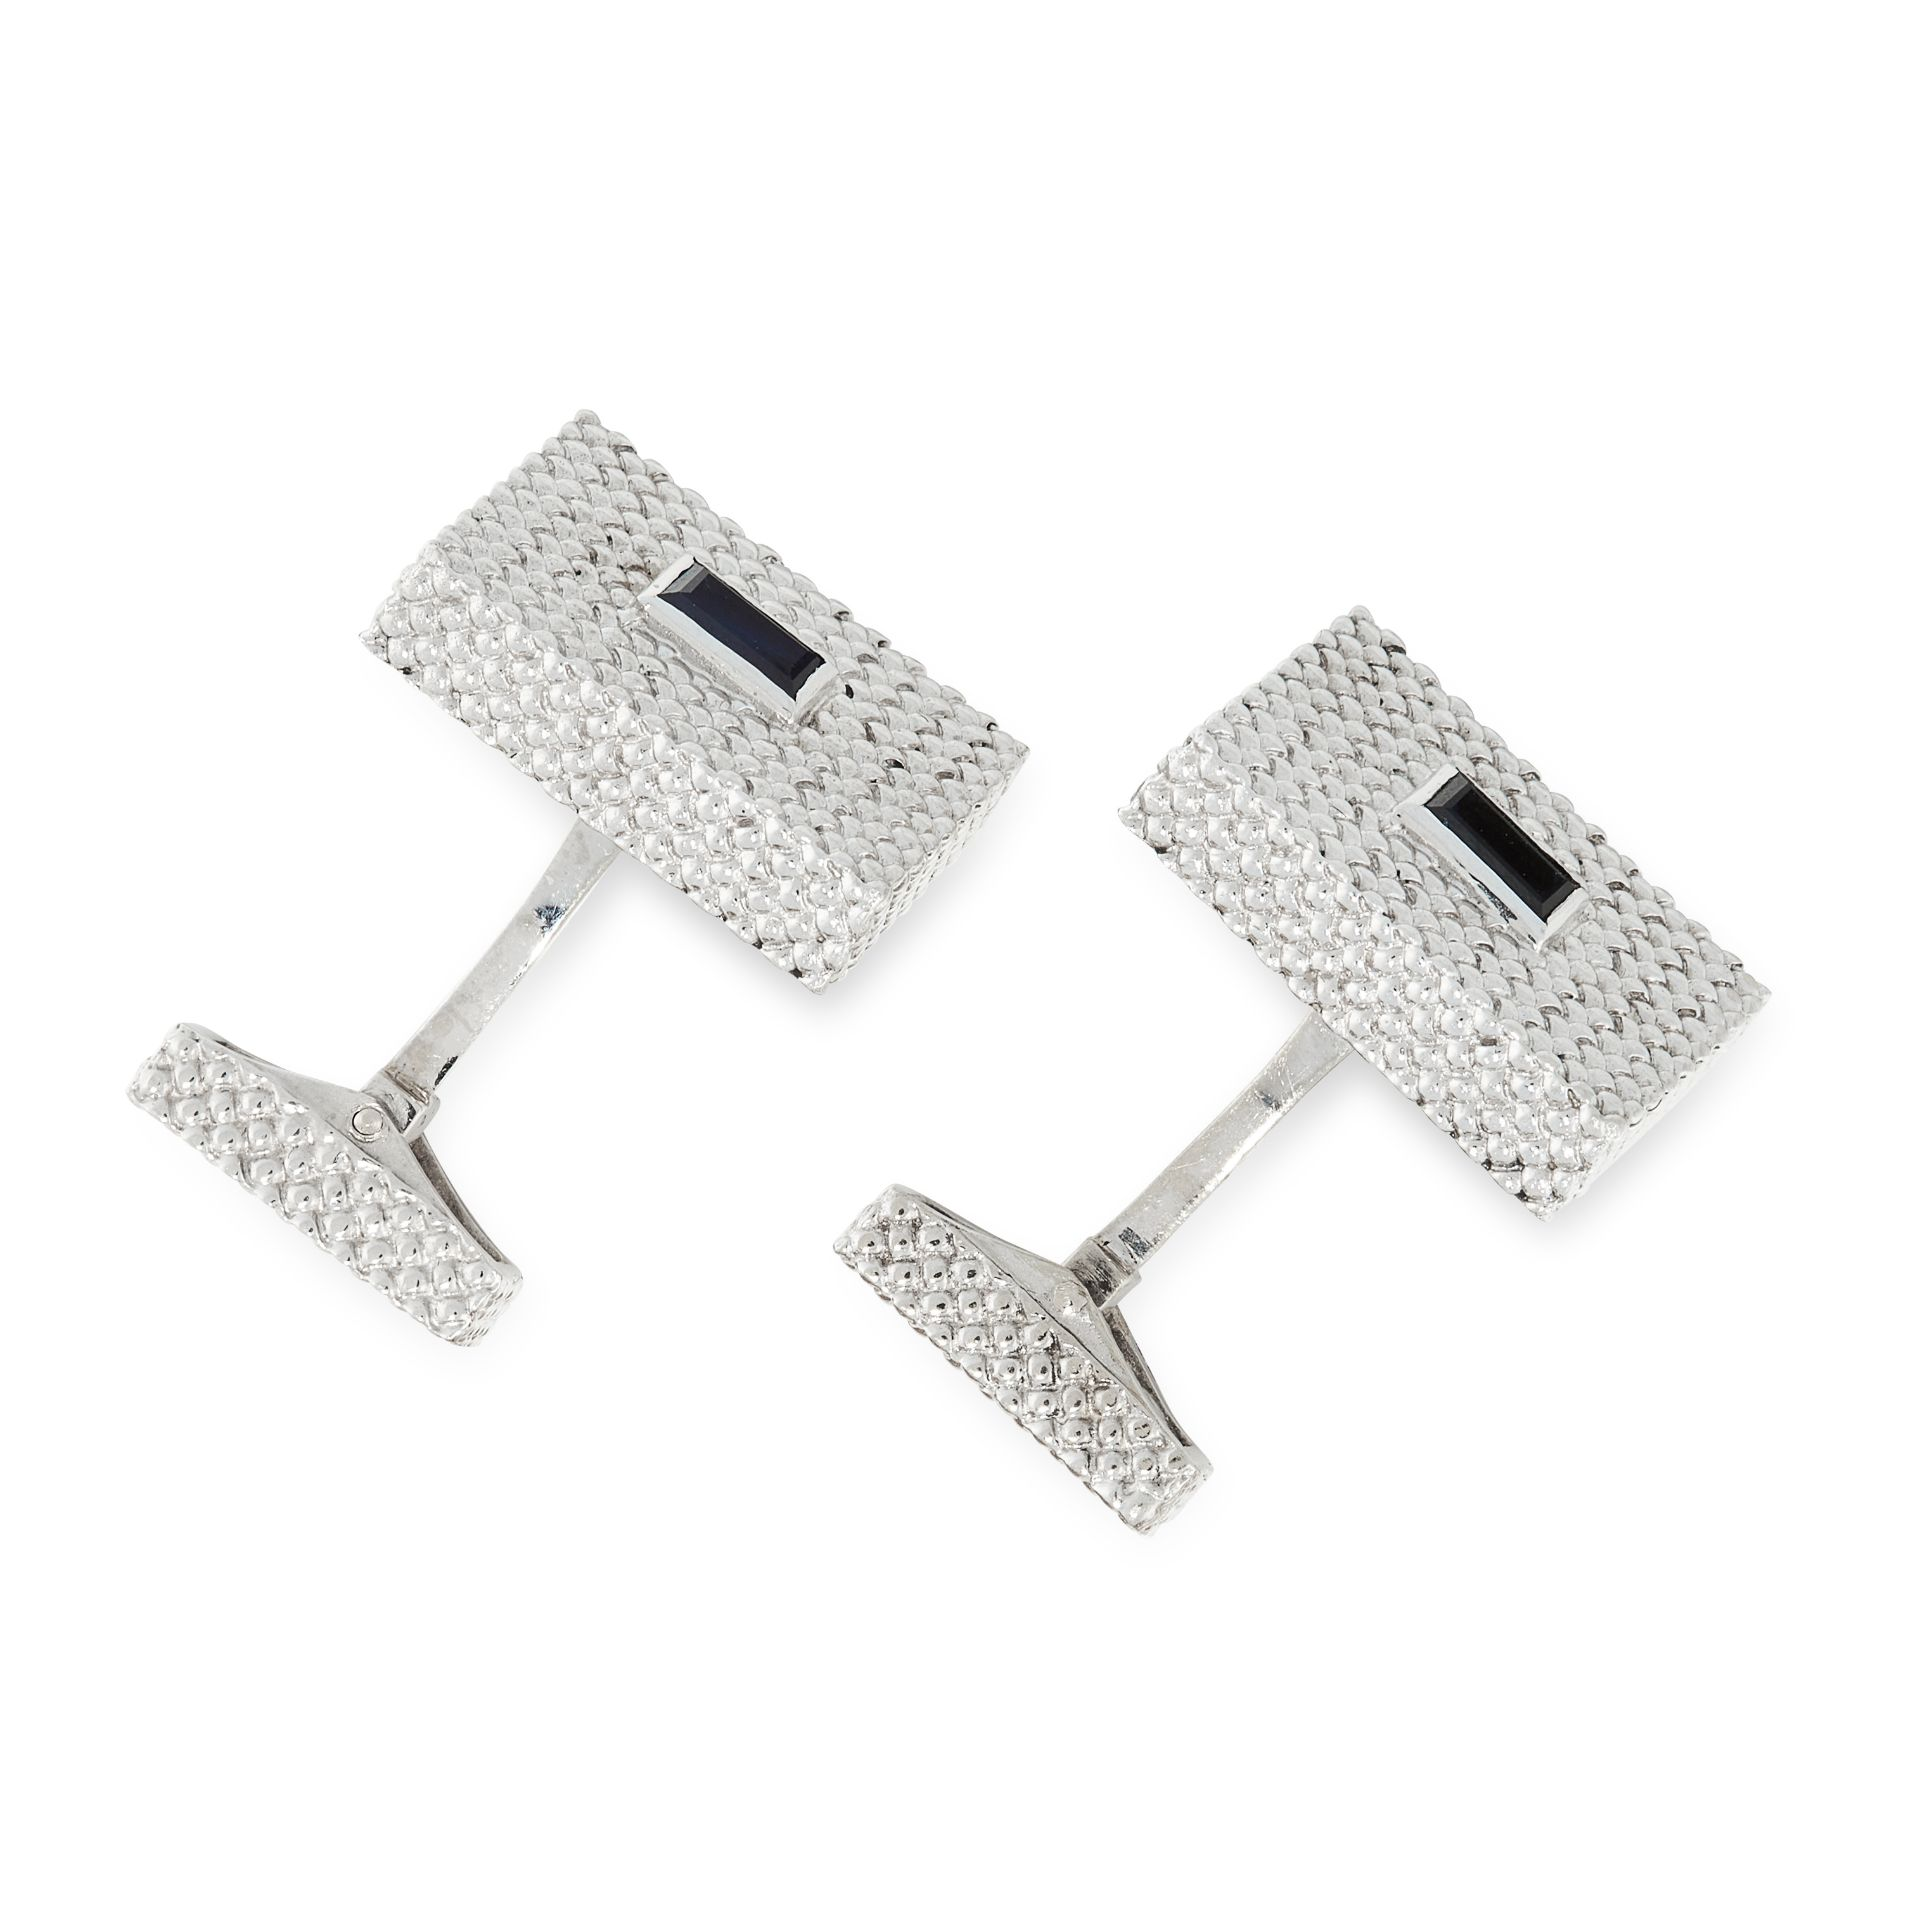 A PAIR OF SAPPHIRE CUFFLINKS, FRED in 18ct white gold, the rectangular textured faces set with